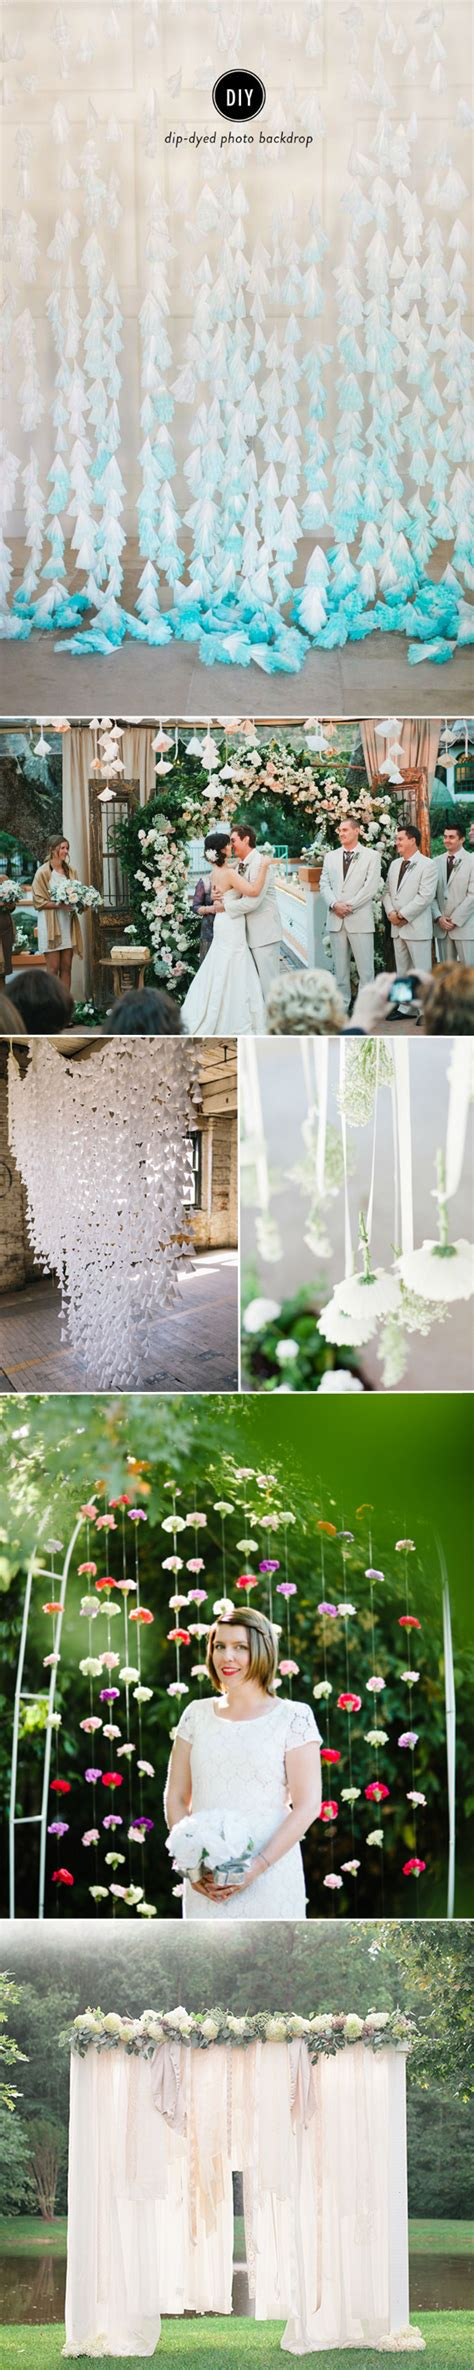 7 charming diy wedding decor ideas we love tulle chantilly wedding blog